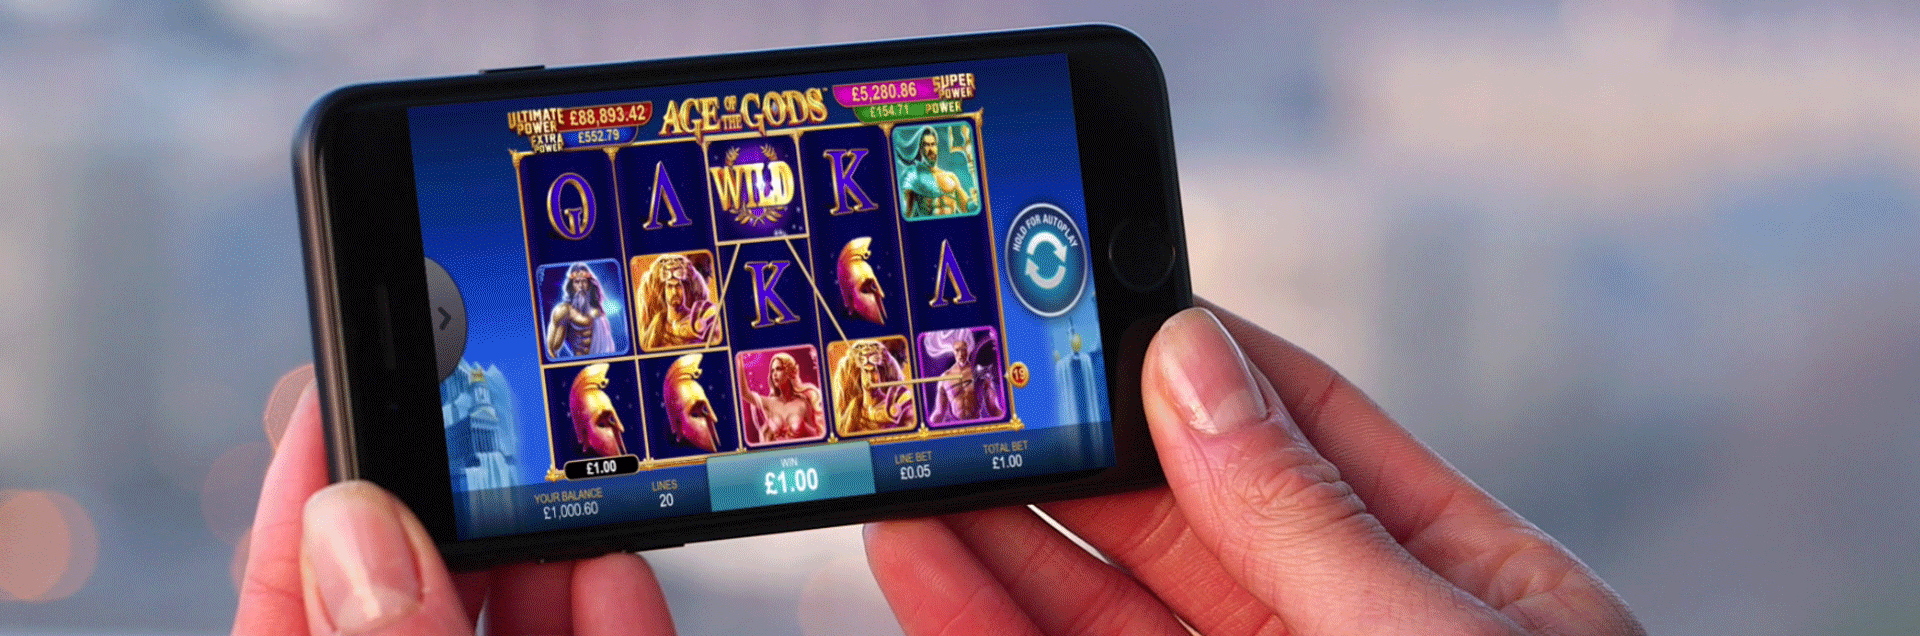 mobile casino - age of the gods